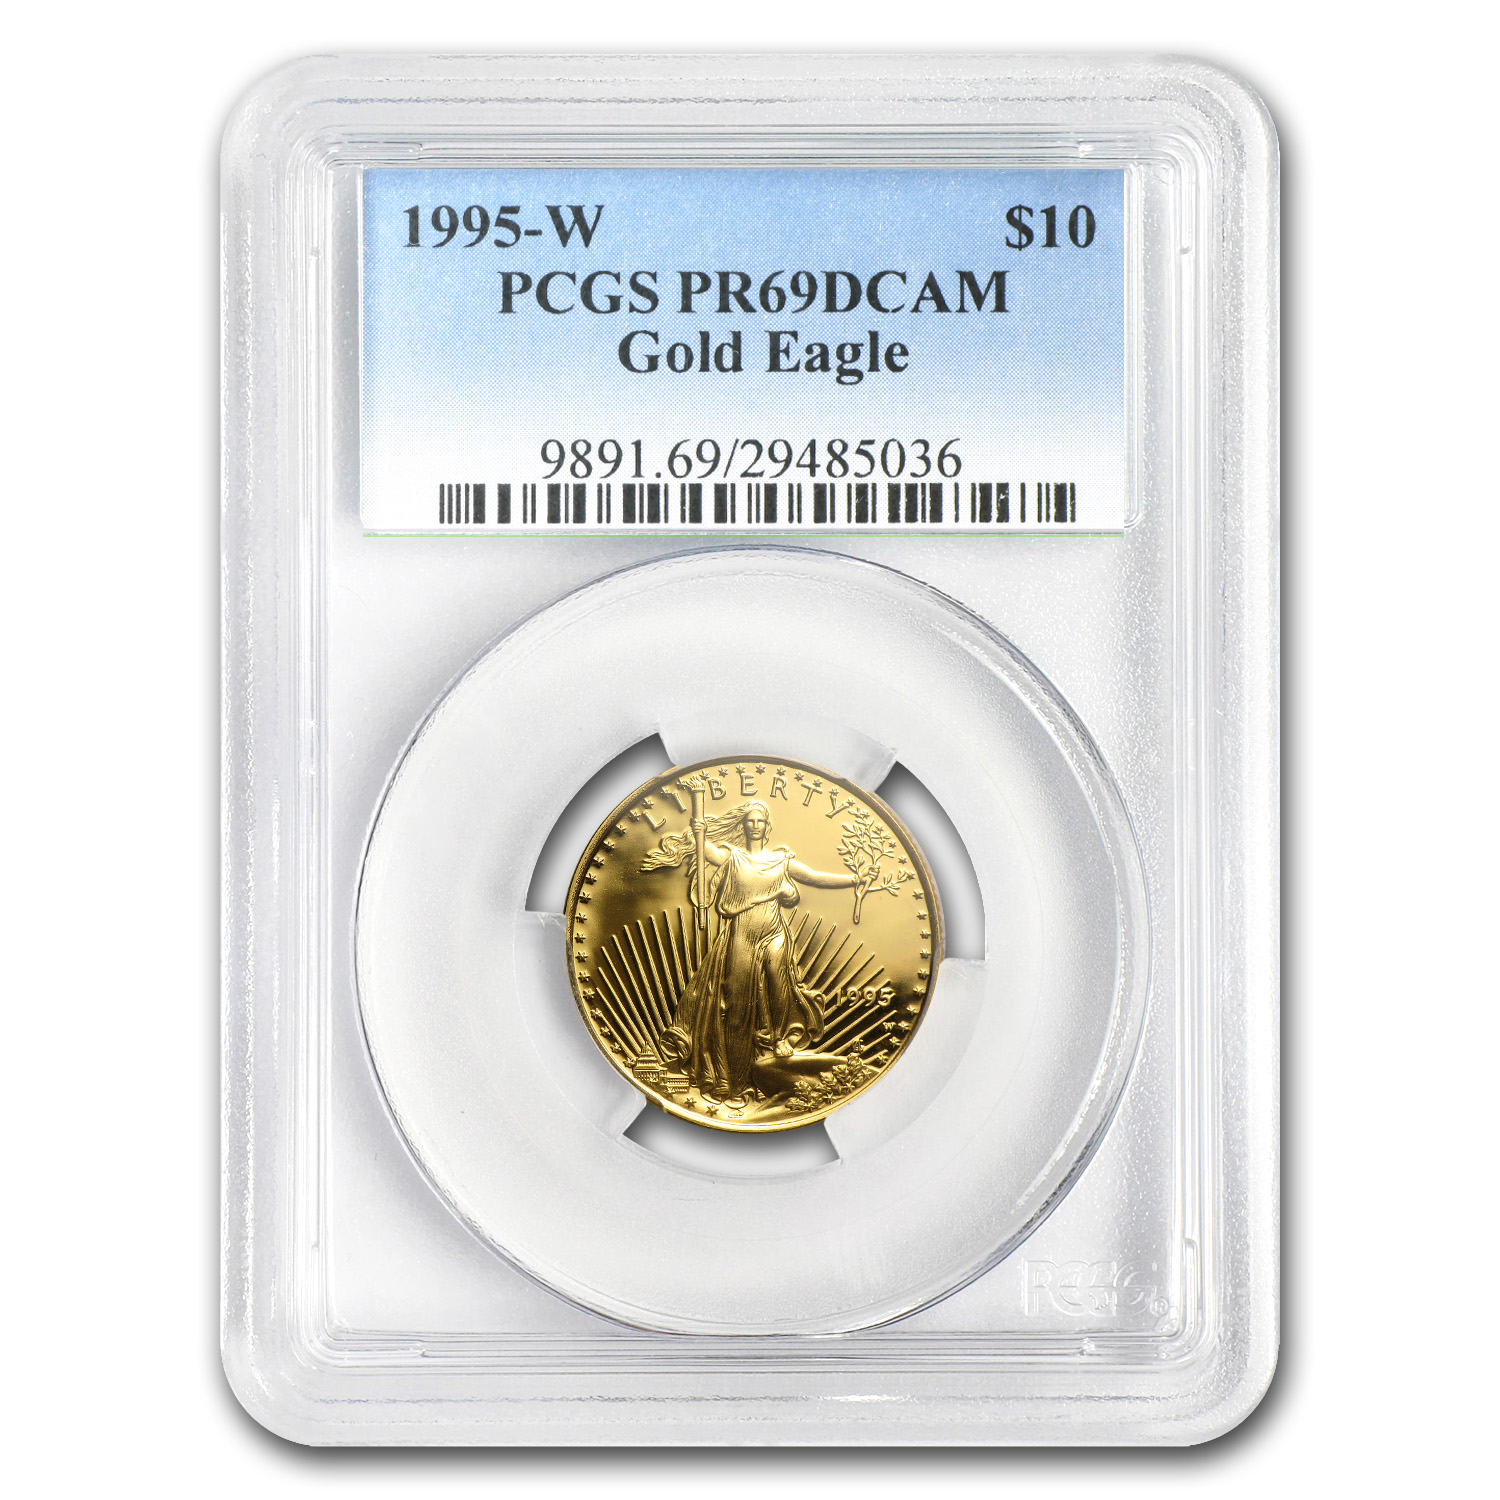 1/4 oz Proof Gold American Eagle PR-69 PCGS (Random Year)